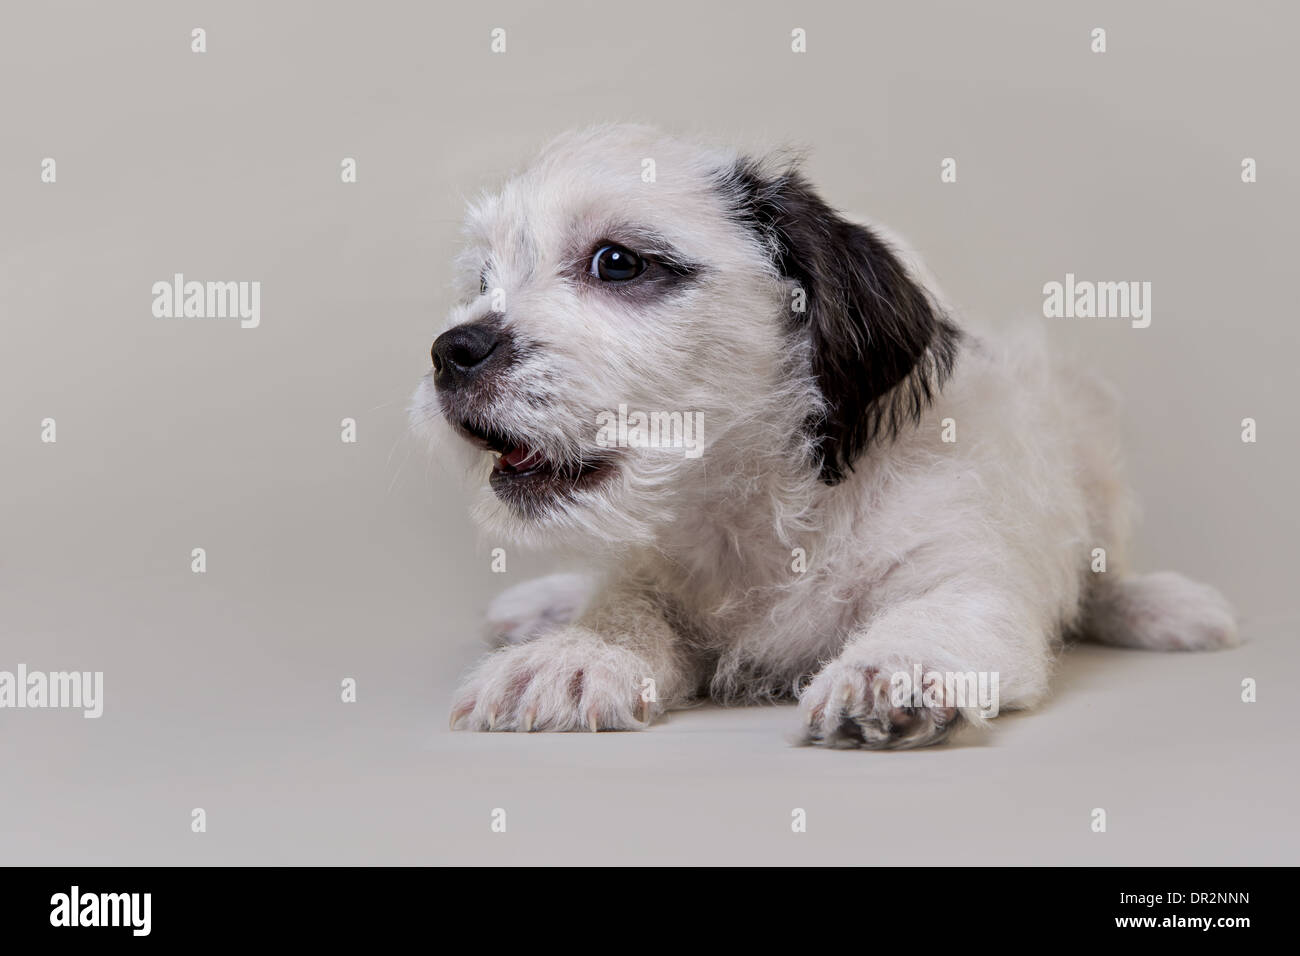 Happy puppy smiling on light grey studio backdrop. - Stock Image